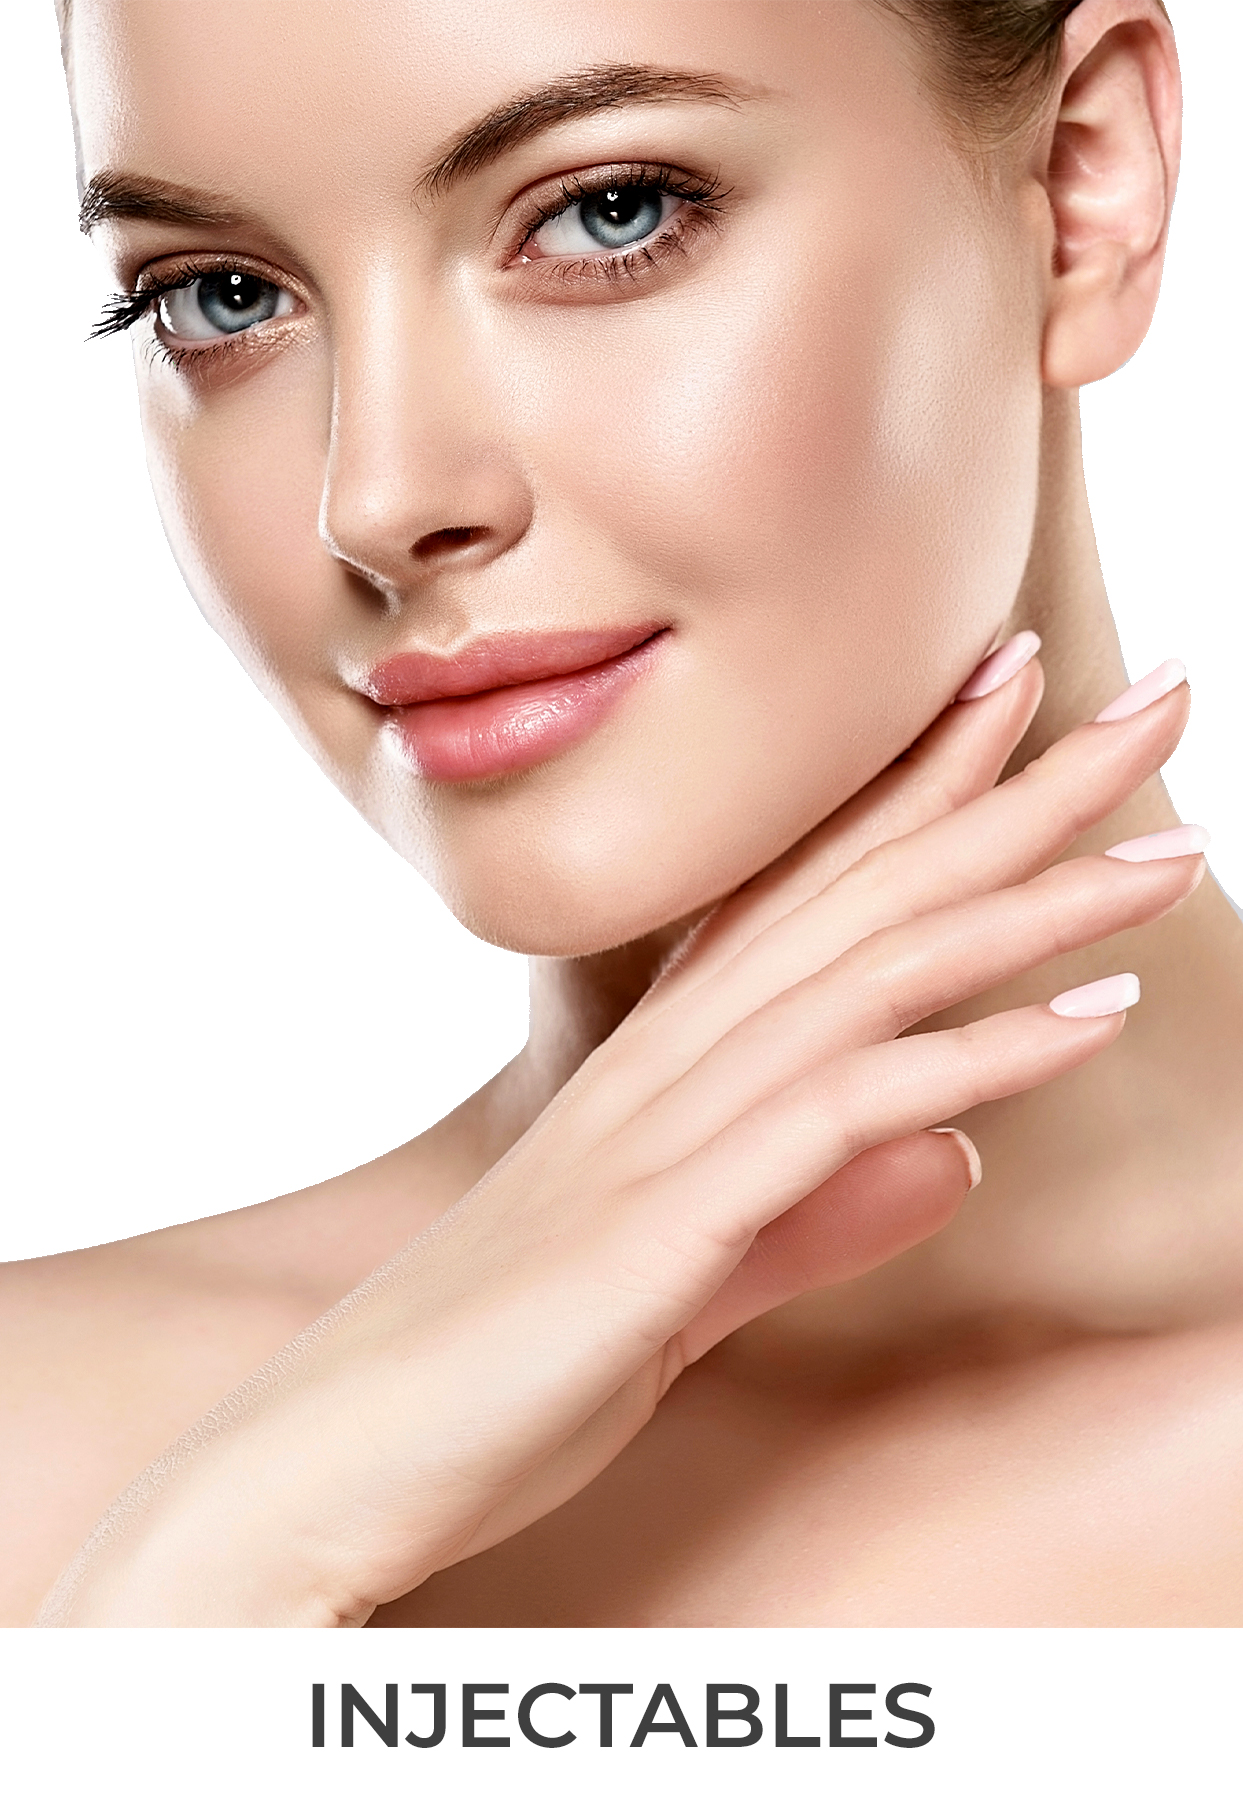 Aesthetic Injectables Oklahoma